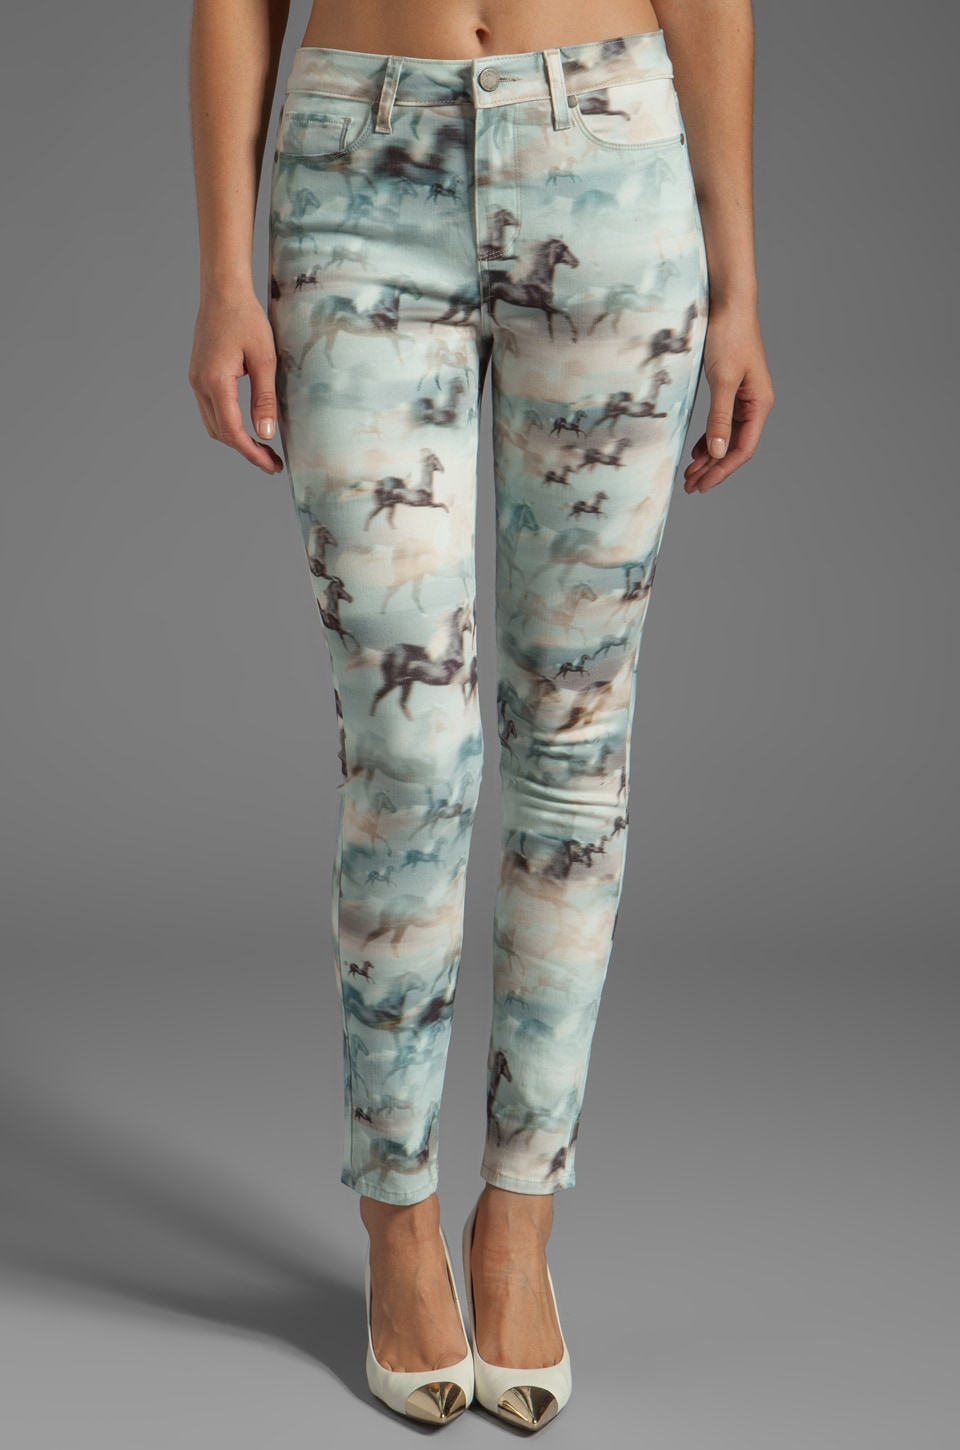 PAIGE Denim Hoxton Ultra Skinny in Wild Hearts